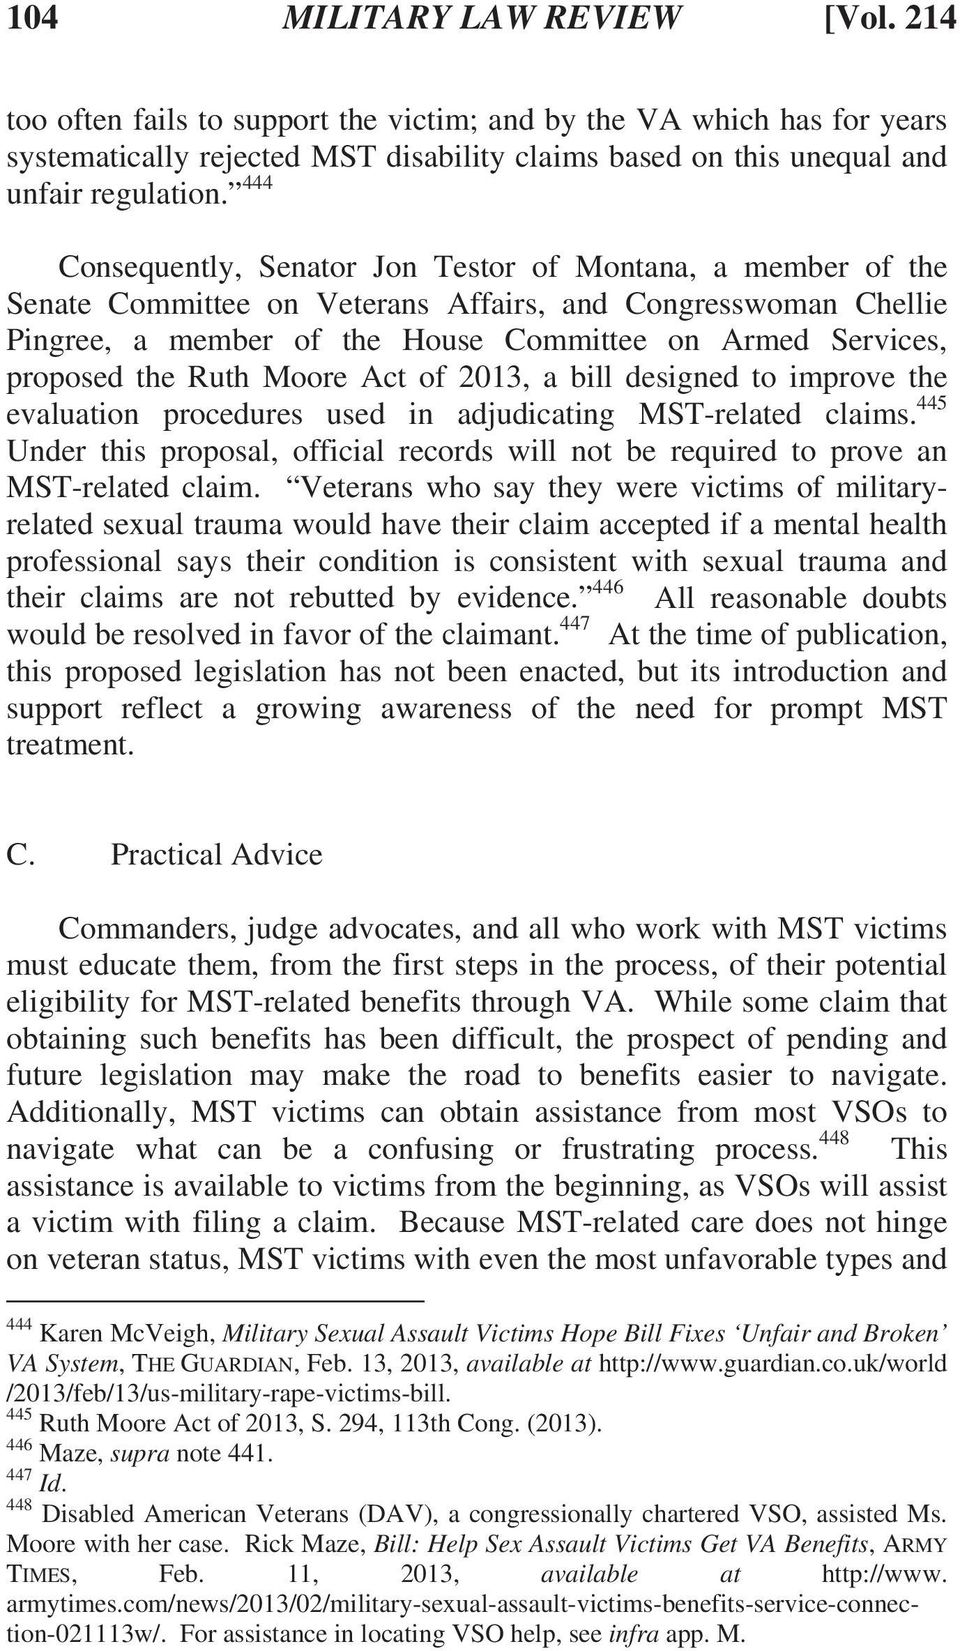 the Ruth Moore Act of 2013, a bill designed to improve the evaluation procedures used in adjudicating MST-related claims.